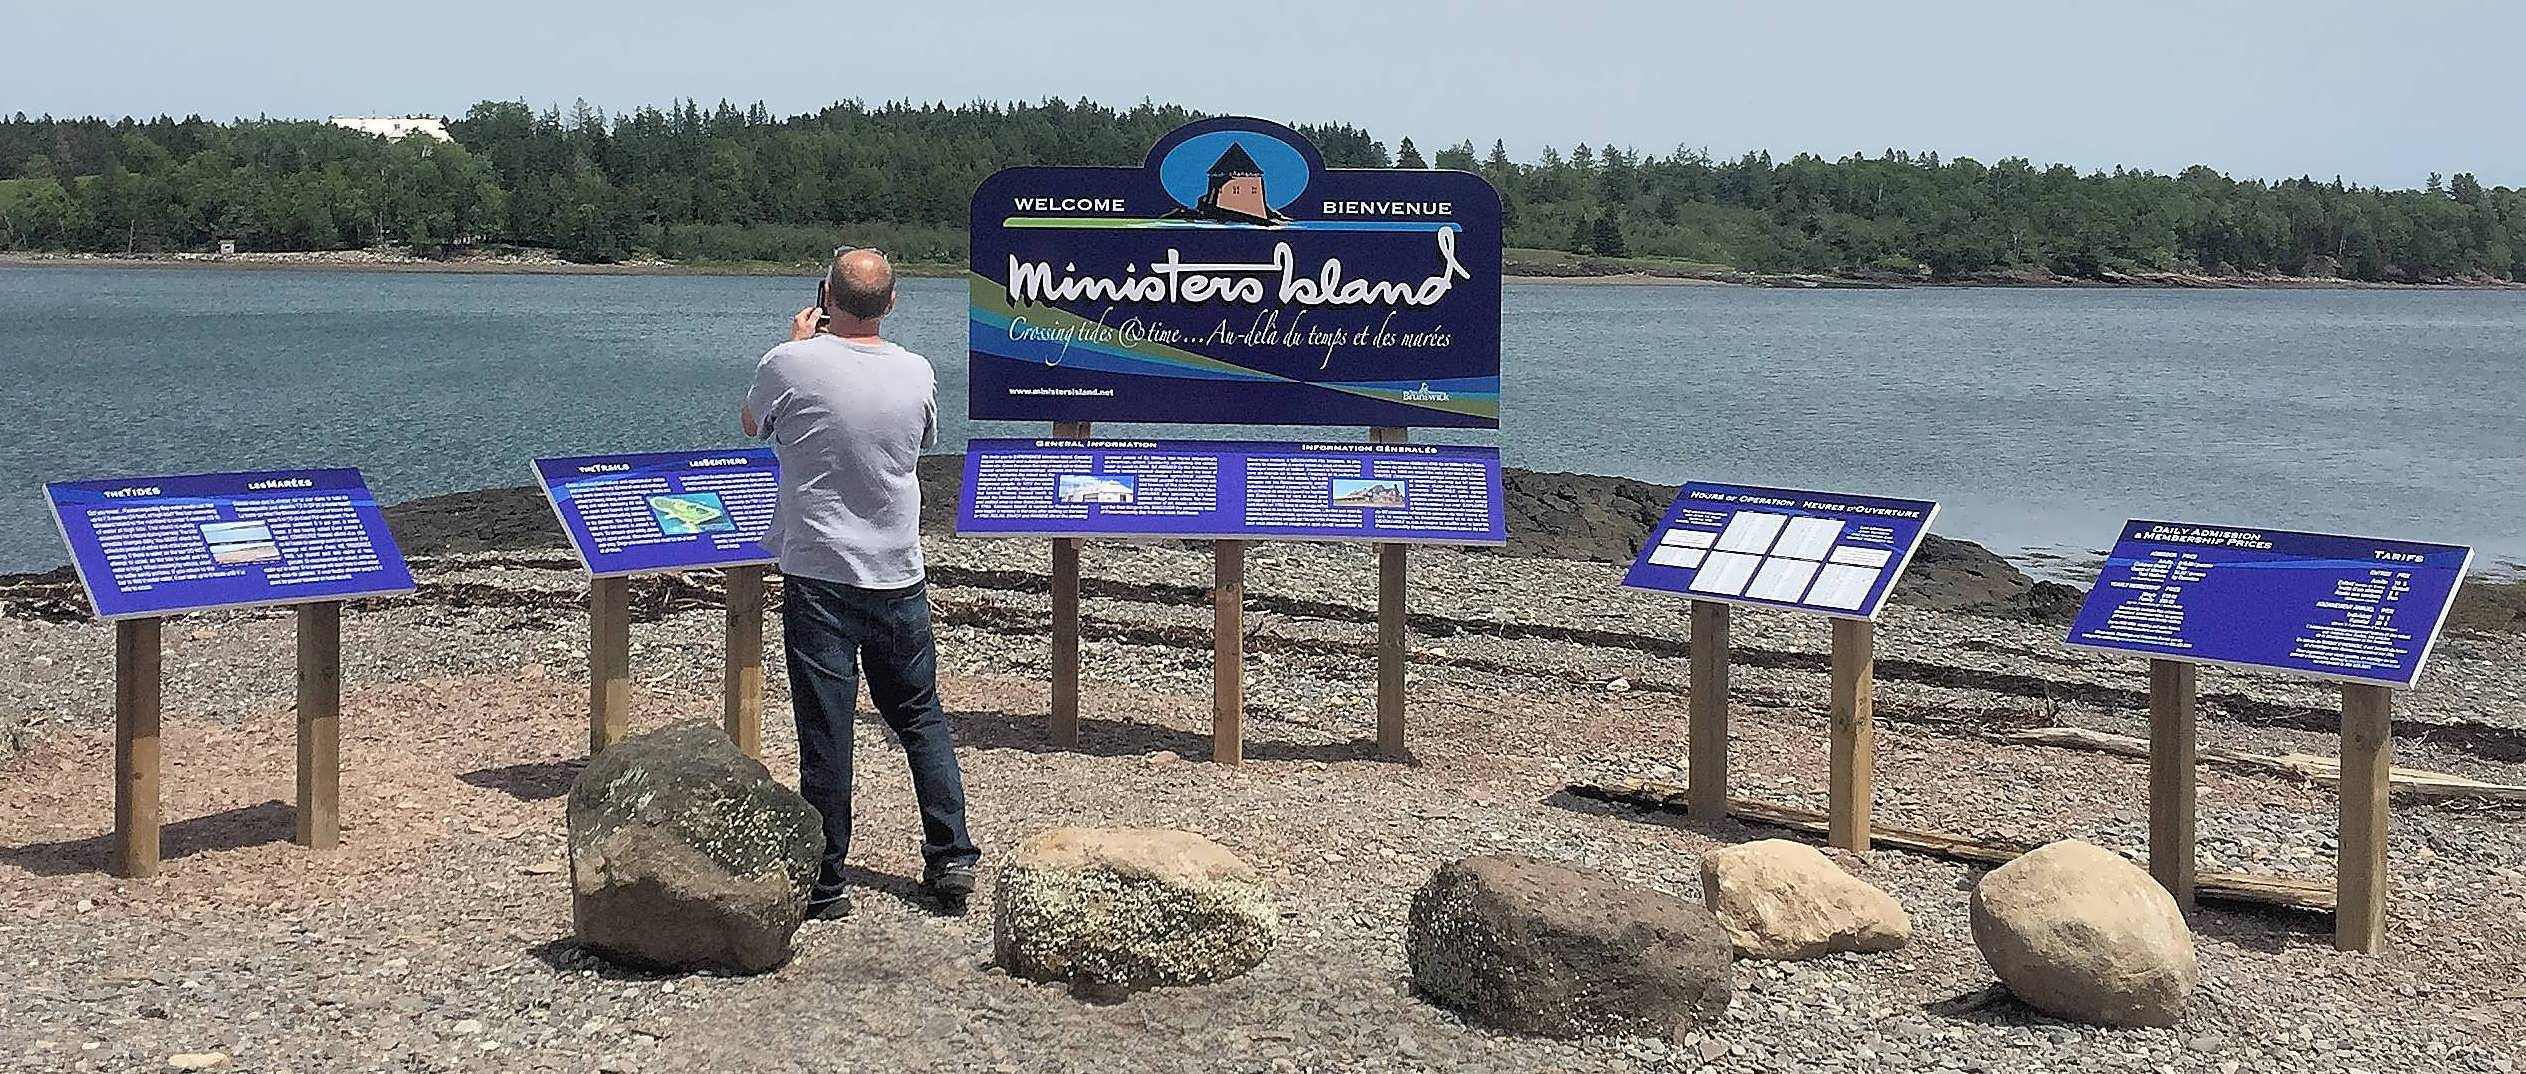 Ministers Island New welcome signs